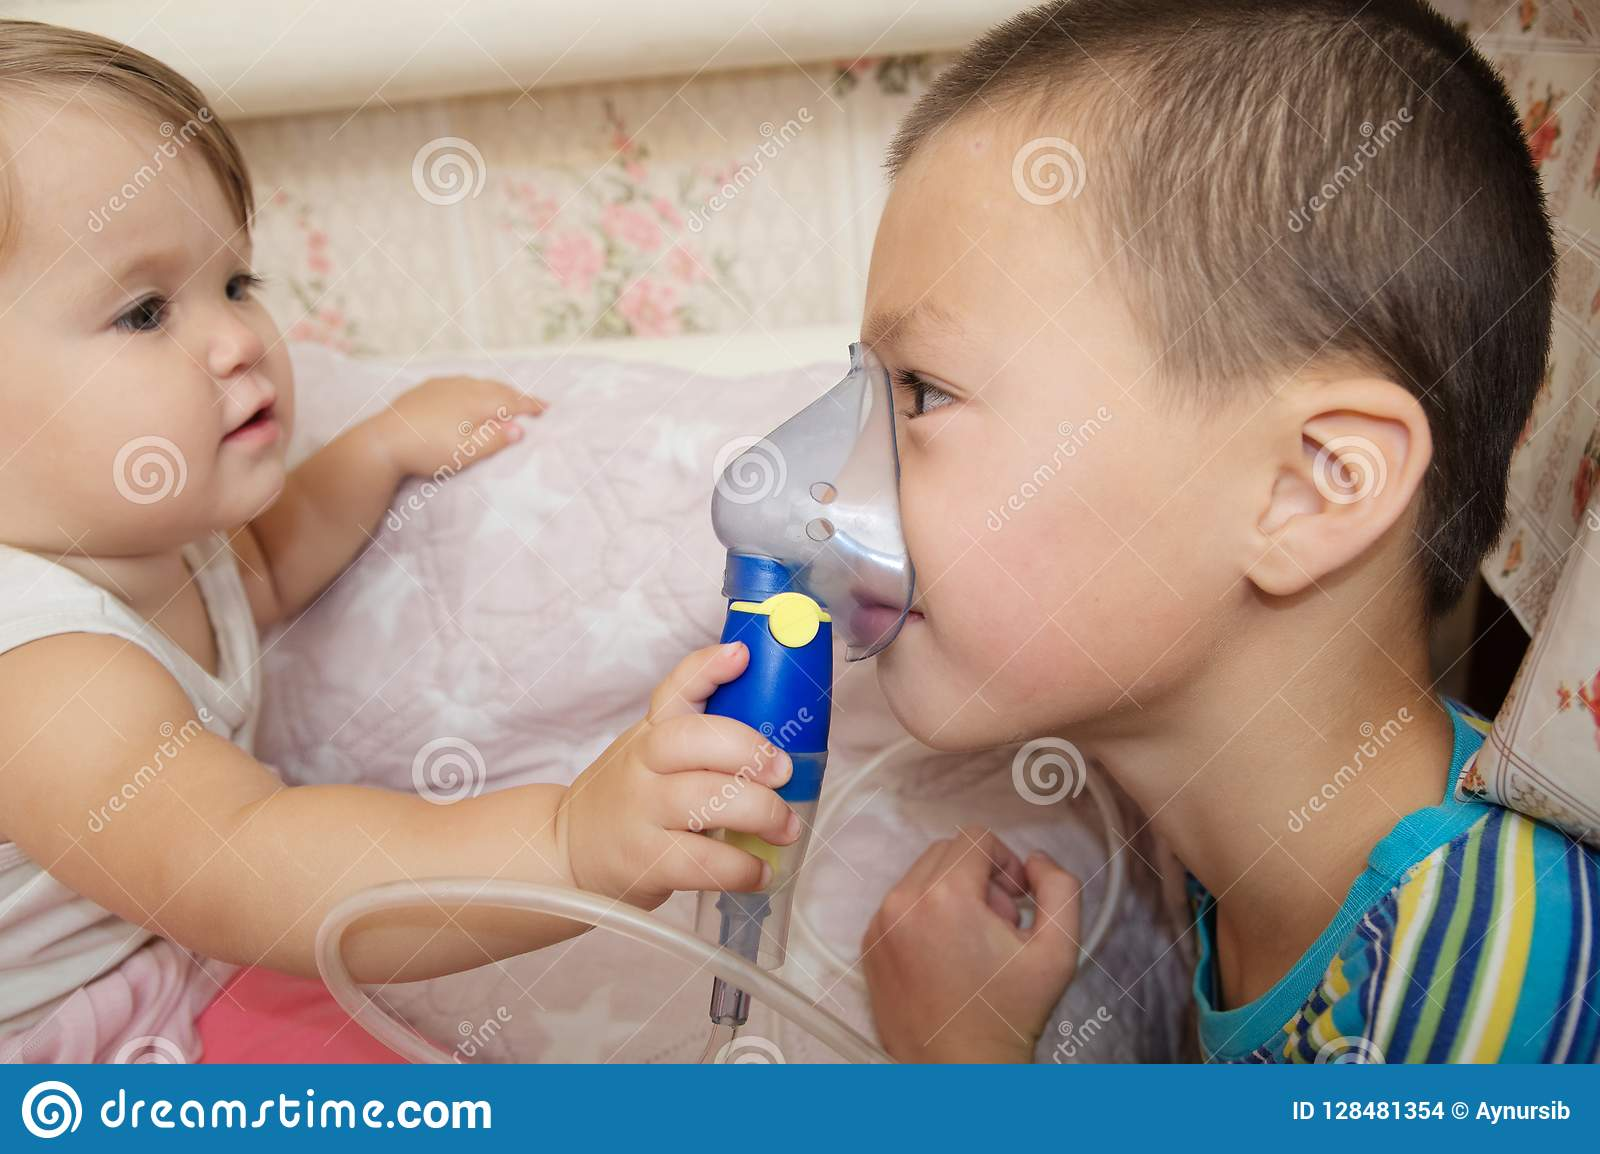 Sick Children - Baby Girl And Boy Use Nebulizer Mask For